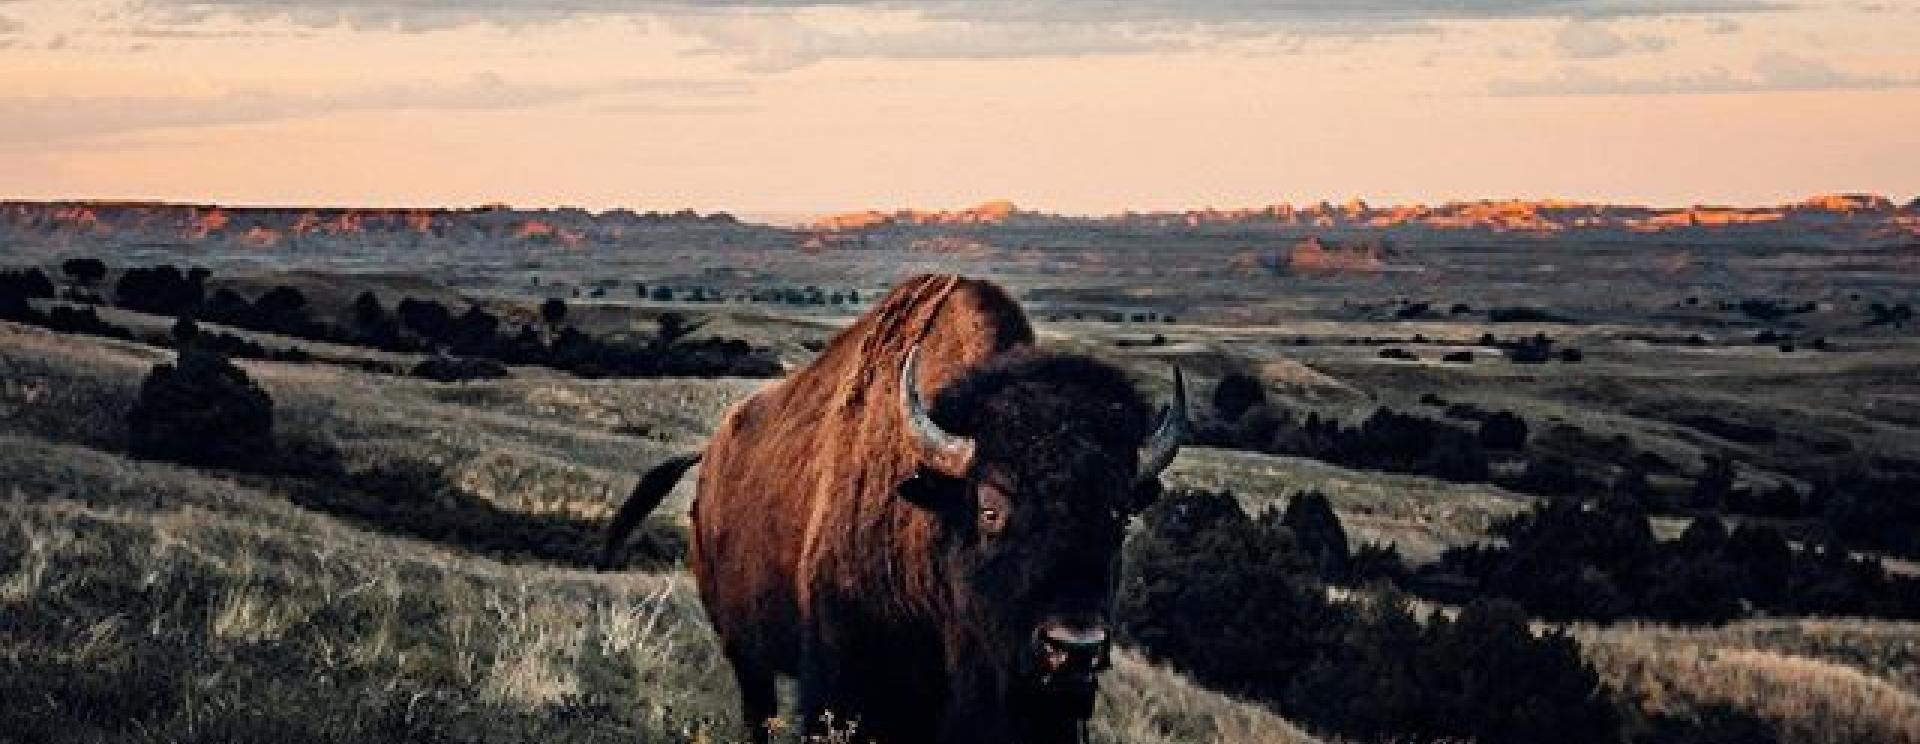 The 5 Most Remarkable Photos of the Black Hills and Badlands in October 2020